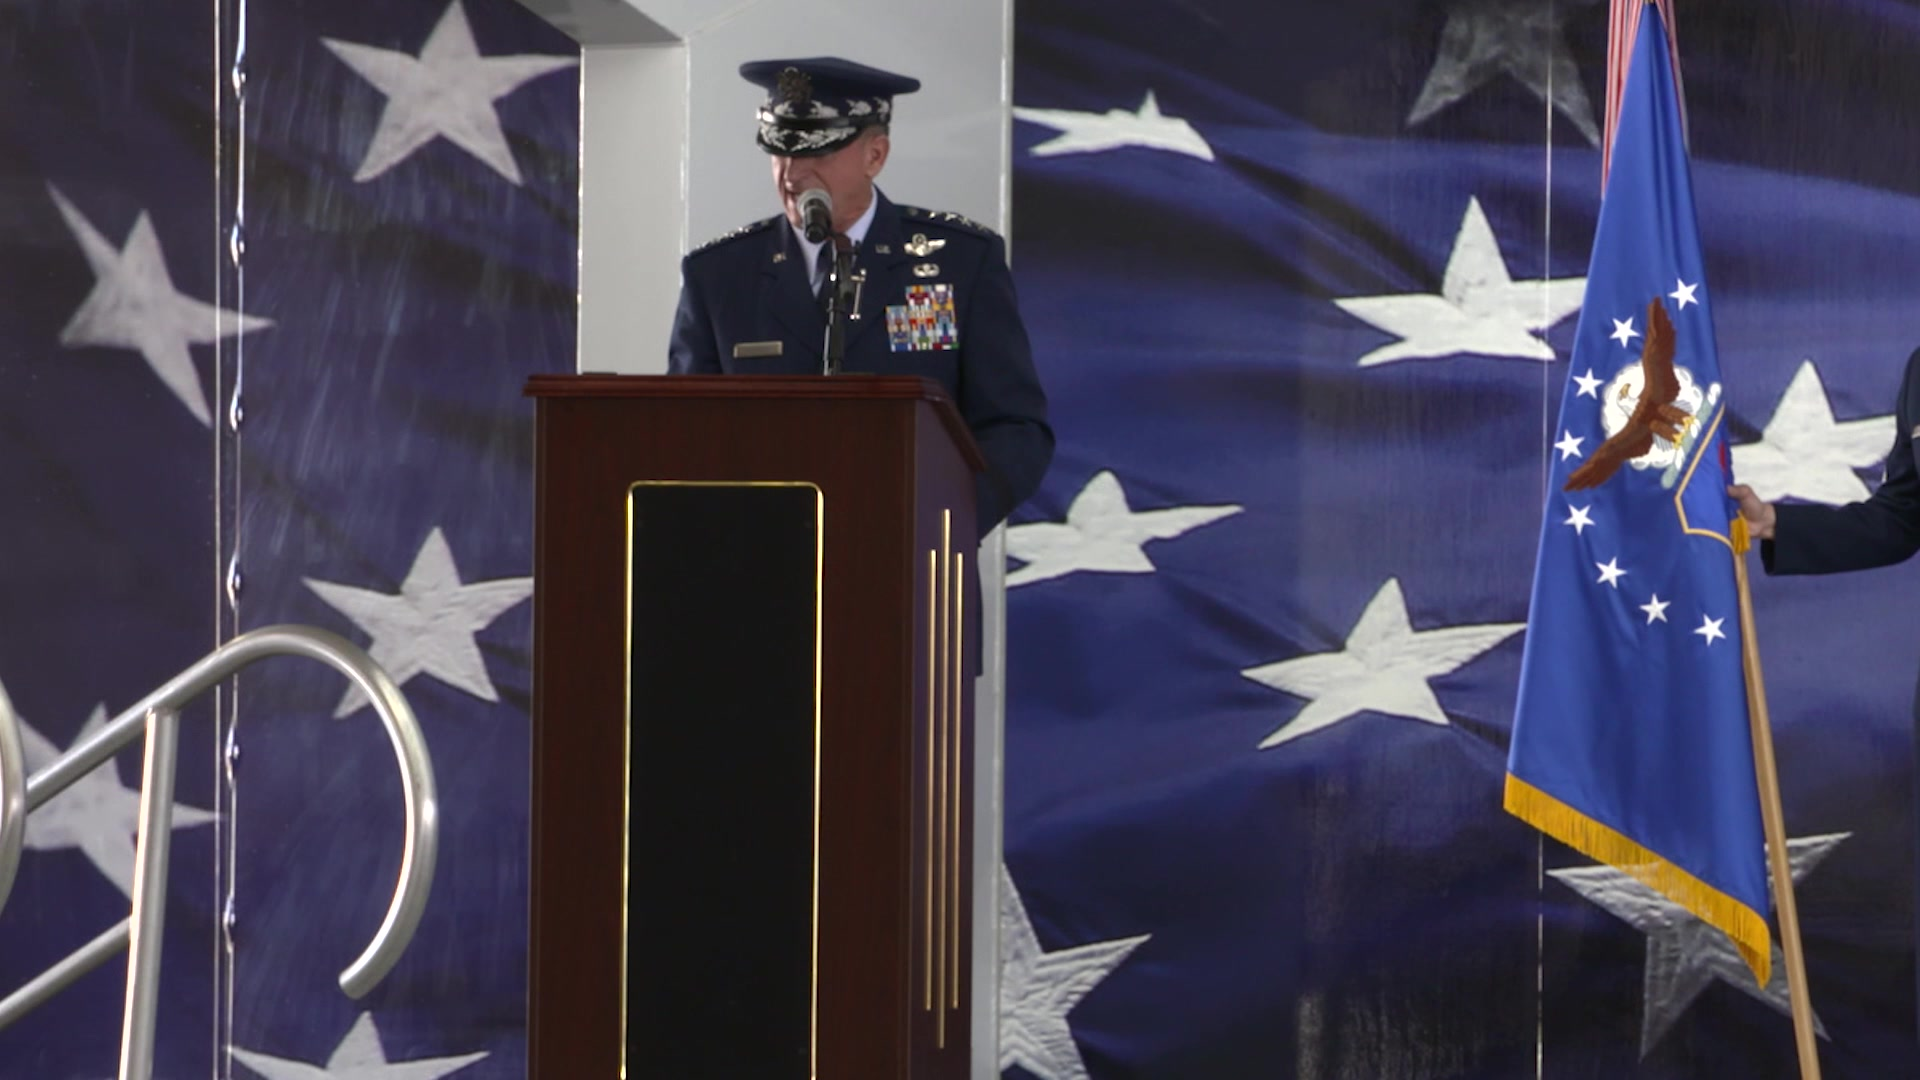 Lt. Gen. Brad Webb took the reins of Air Education and Training Command from Lt. Gen. Steve Kwast during a change of command ceremony at Joint Base San Antonio-Randolph, Texas, on July 26.